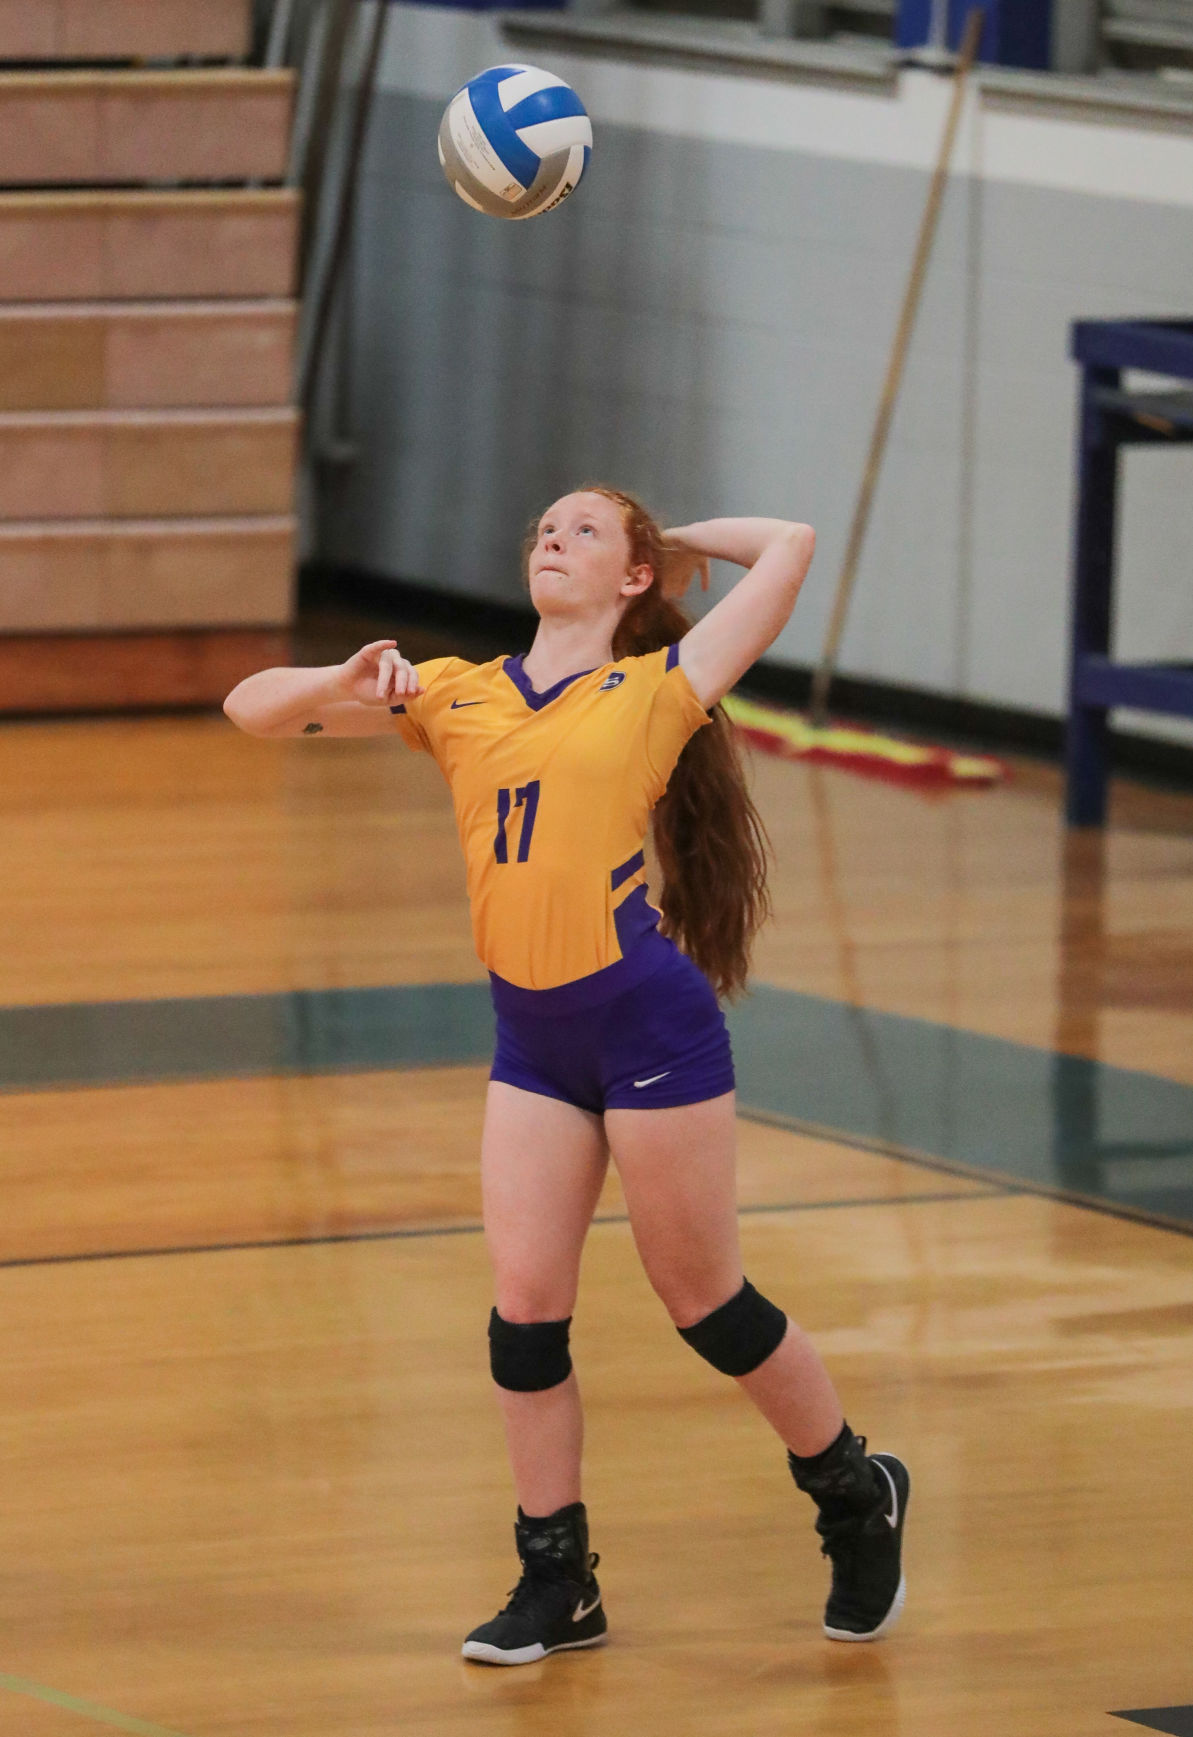 DSHS at Springfield VB Shelby Prest